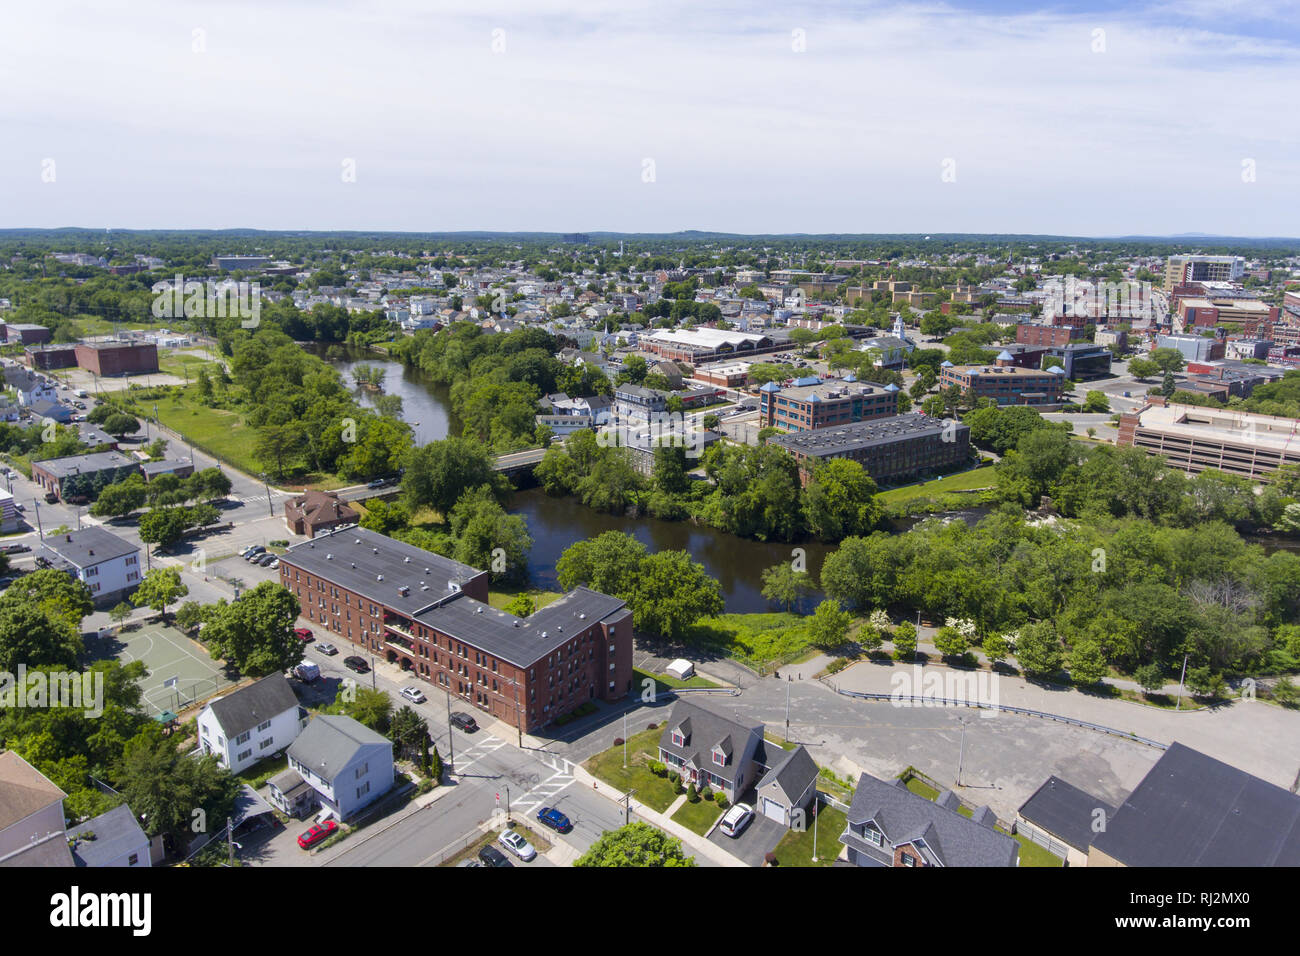 Lowell historic downtown aerial view in Lowell, Massachusetts, USA. - Stock Image